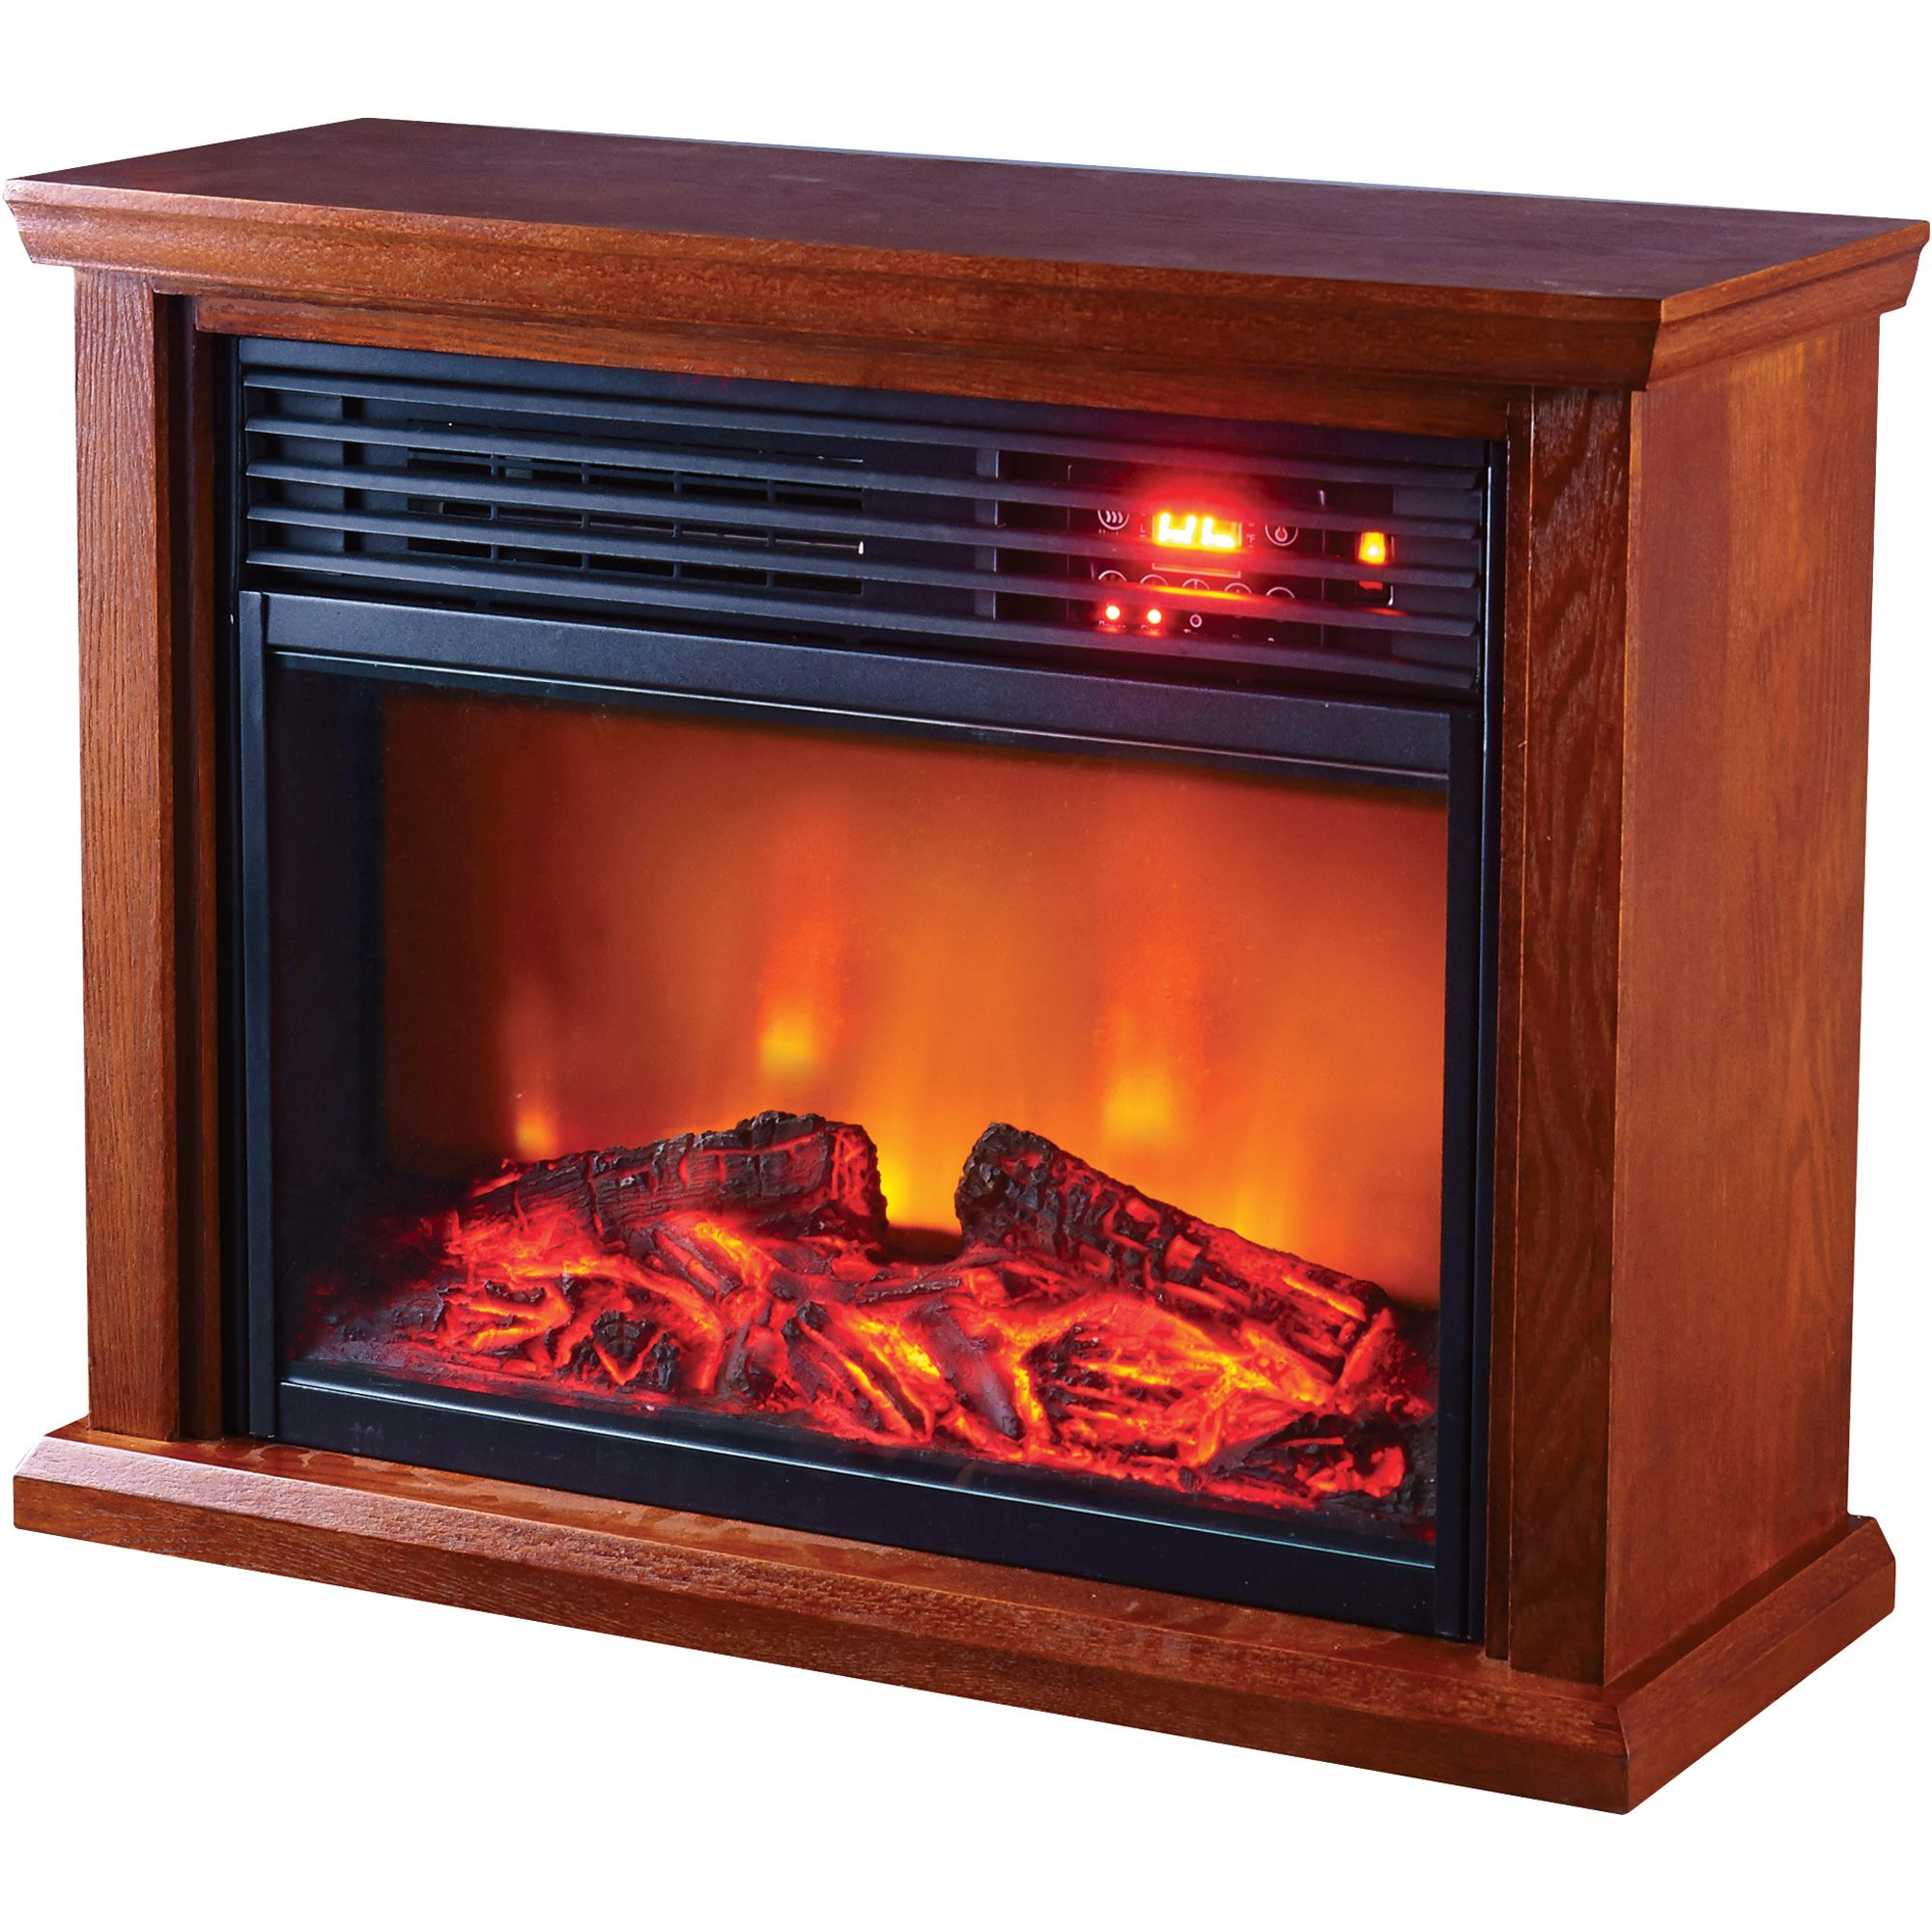 This ProFusion Heat Infrared Electric Fireplace puts soothing infrared heat in a handsome wooden cabinet. No costly installation or venting is required. Plugs into standard household outlet. With three infrared quartz tubes